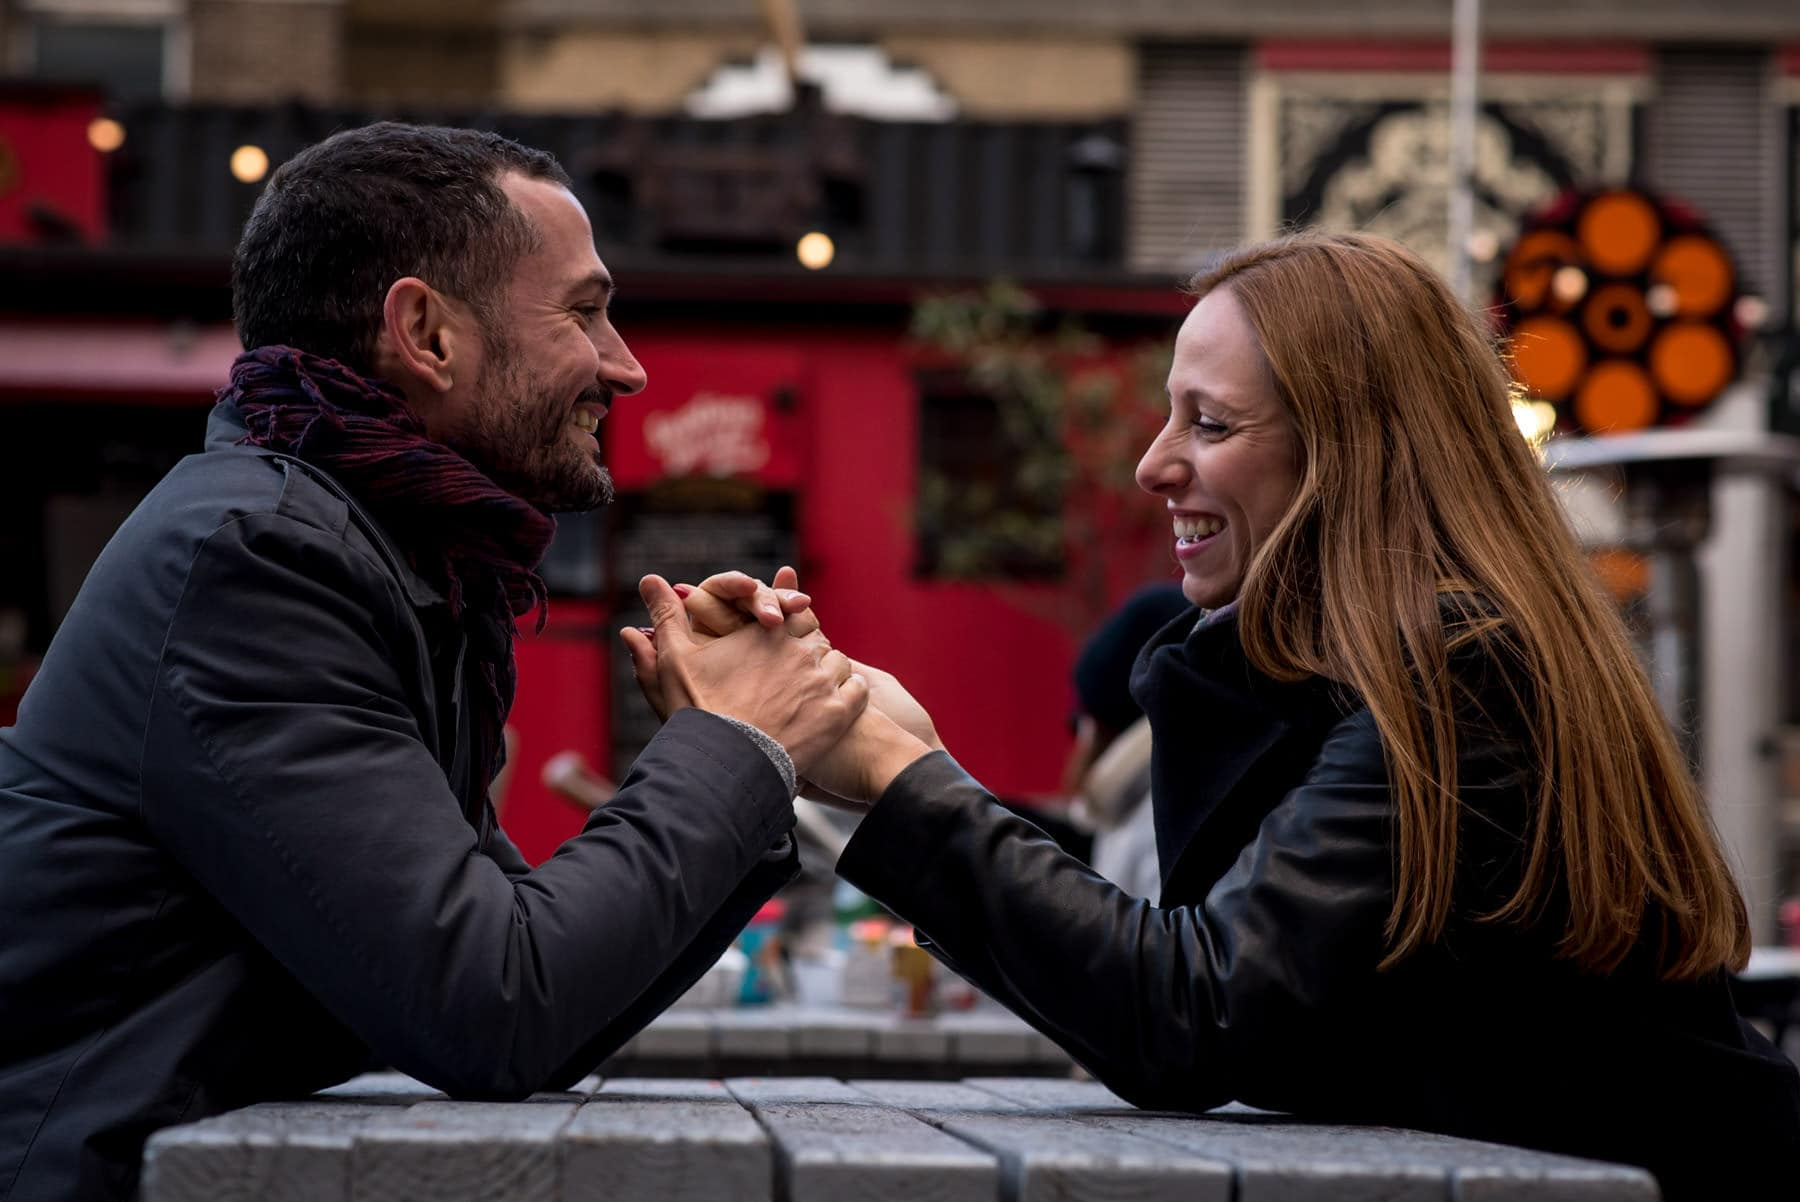 Photo of a couple holding their hands and laughing in Shoreditch, London